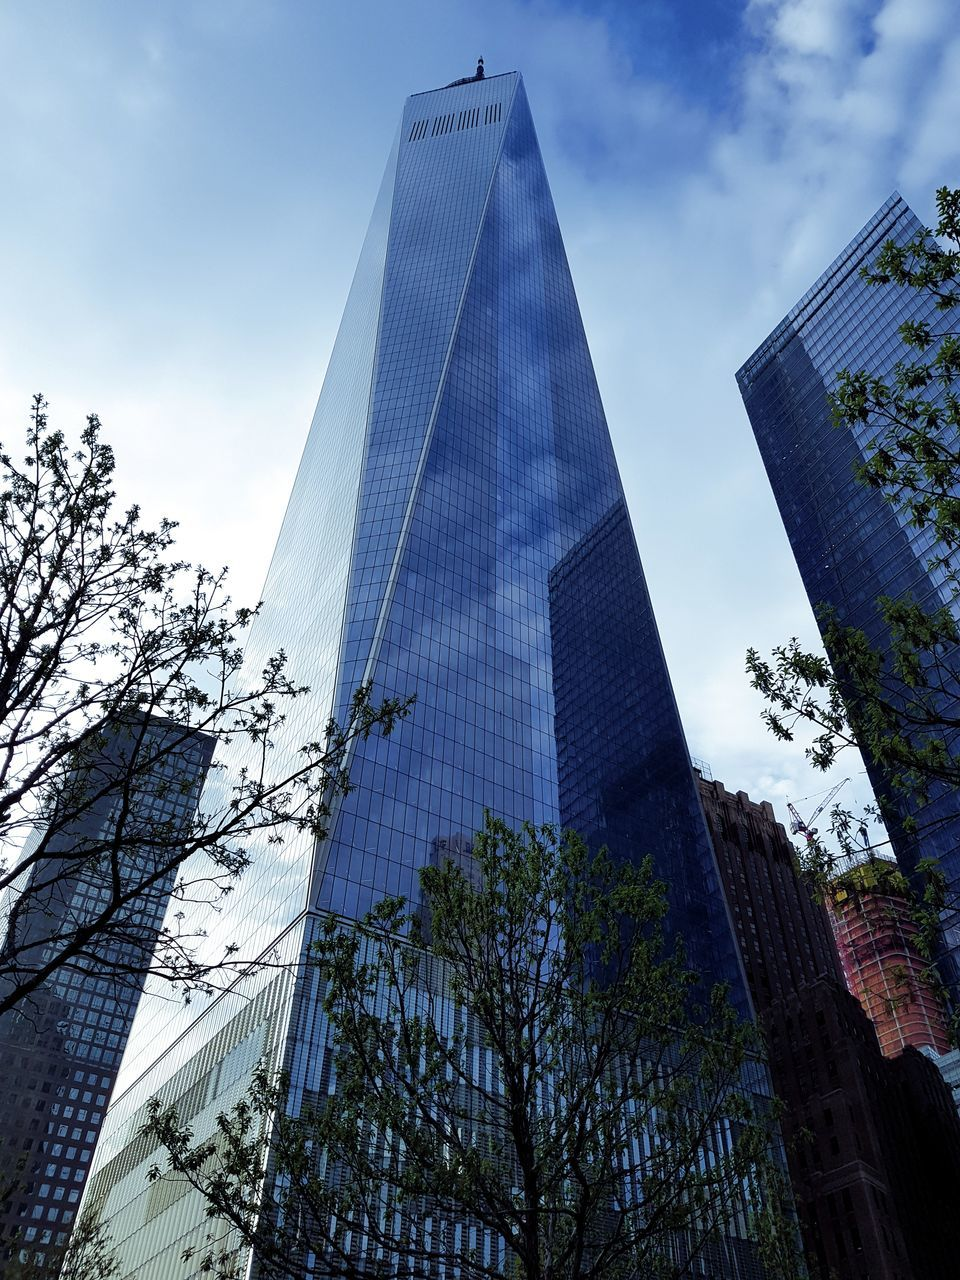 architecture, low angle view, skyscraper, modern, built structure, building exterior, tall - high, sky, tree, growth, day, no people, outdoors, city, tall, travel destinations